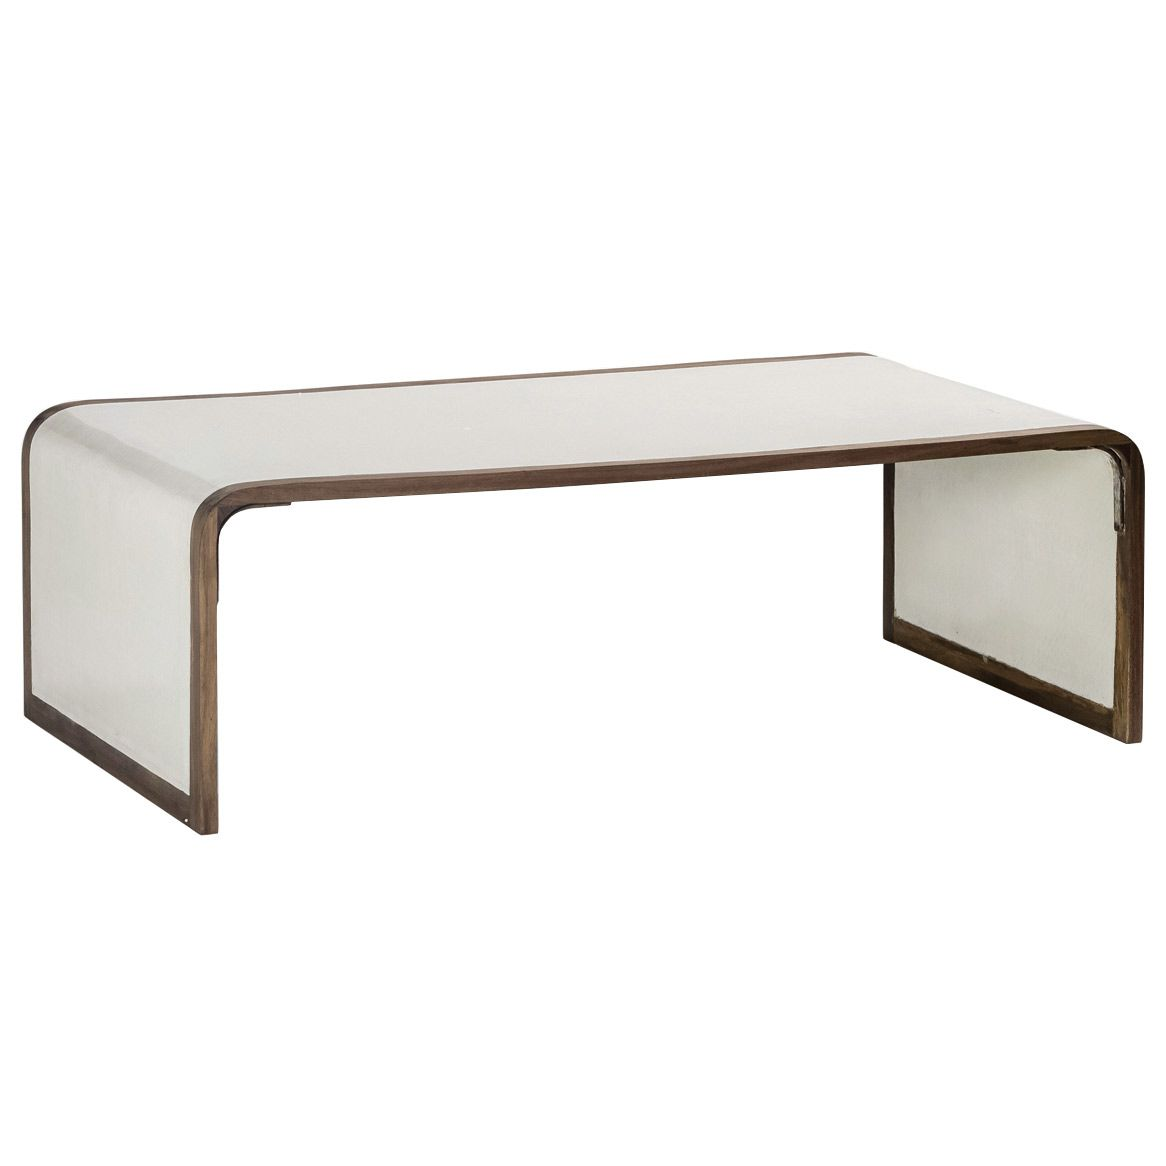 Lovely Gabbyu0027s Shelby Coffee Table Stuns With Minimalist Glamour. With A Modern  Waterfall Edge, This Furnishing Features Natural Wood And Resin Covered, ...